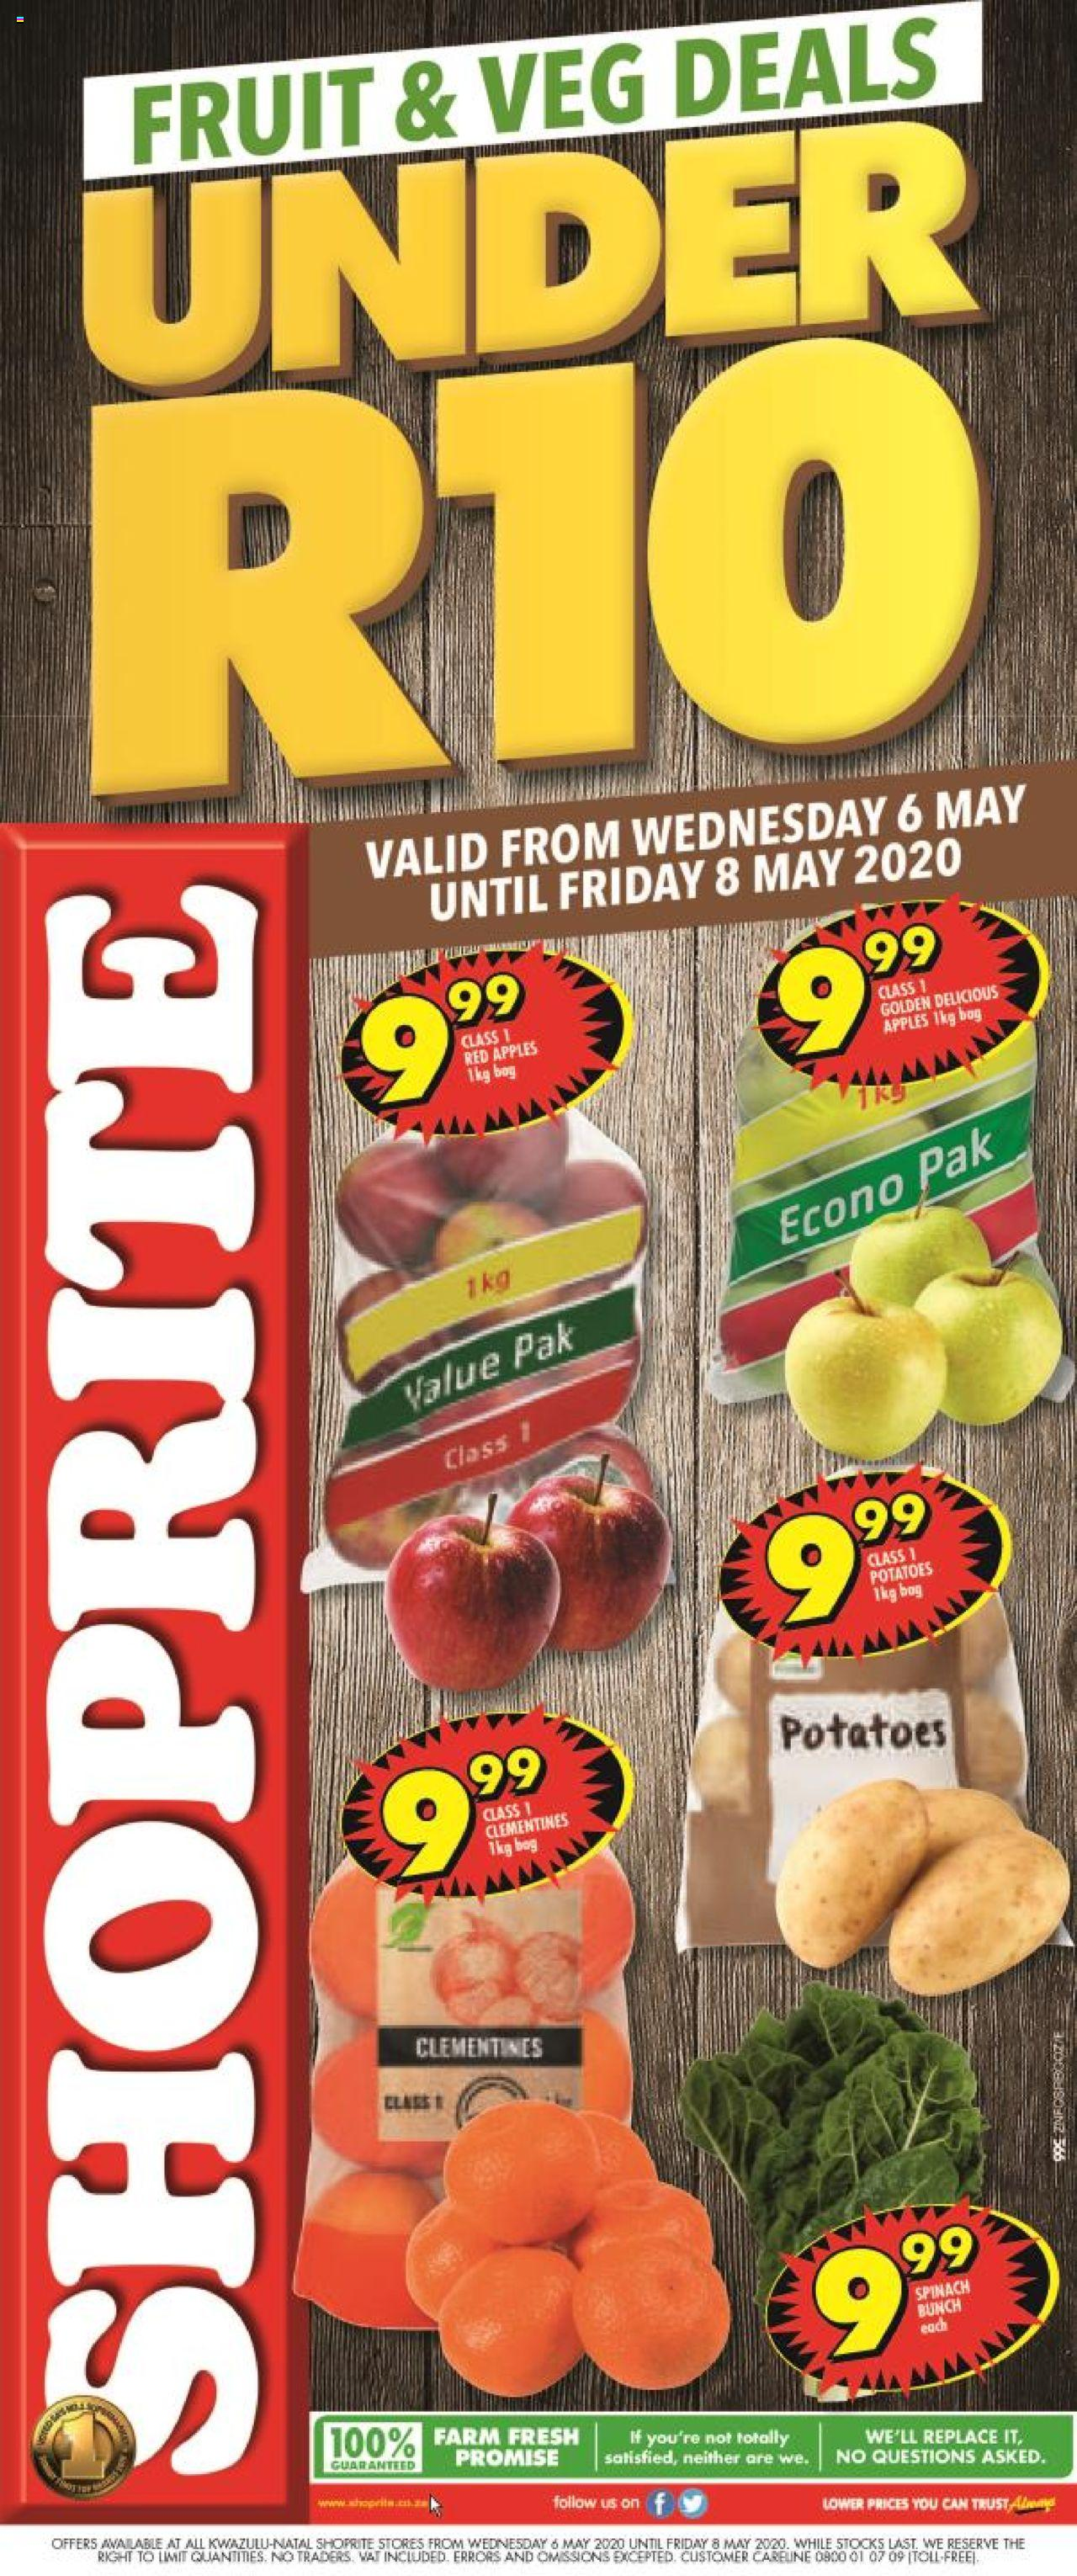 shoprite specials fruit and vegs 6 may 2020